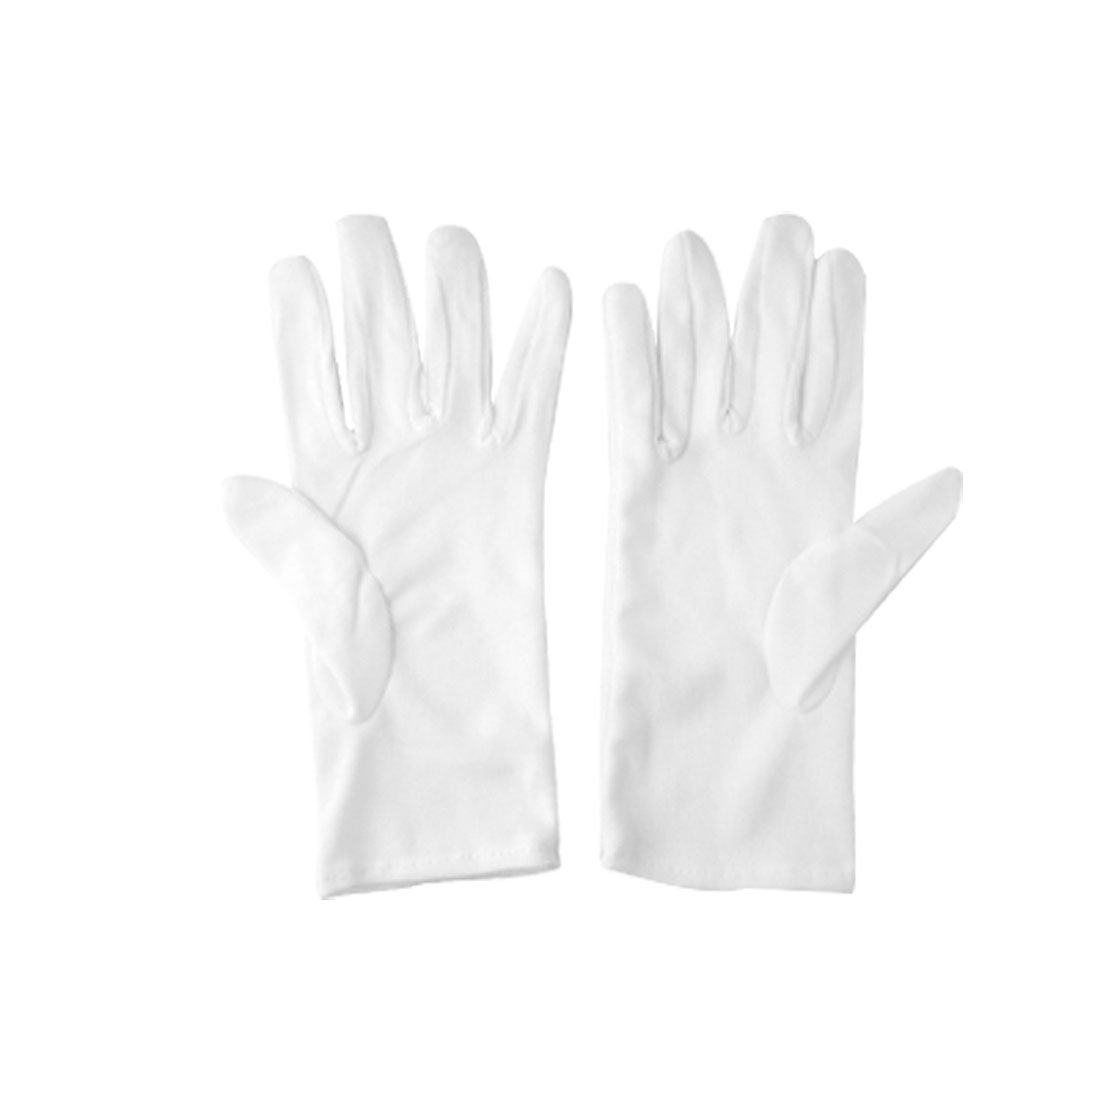 Ladies White Cotton Thin Full Fingers Work Driving Gloves S 2 Pairs